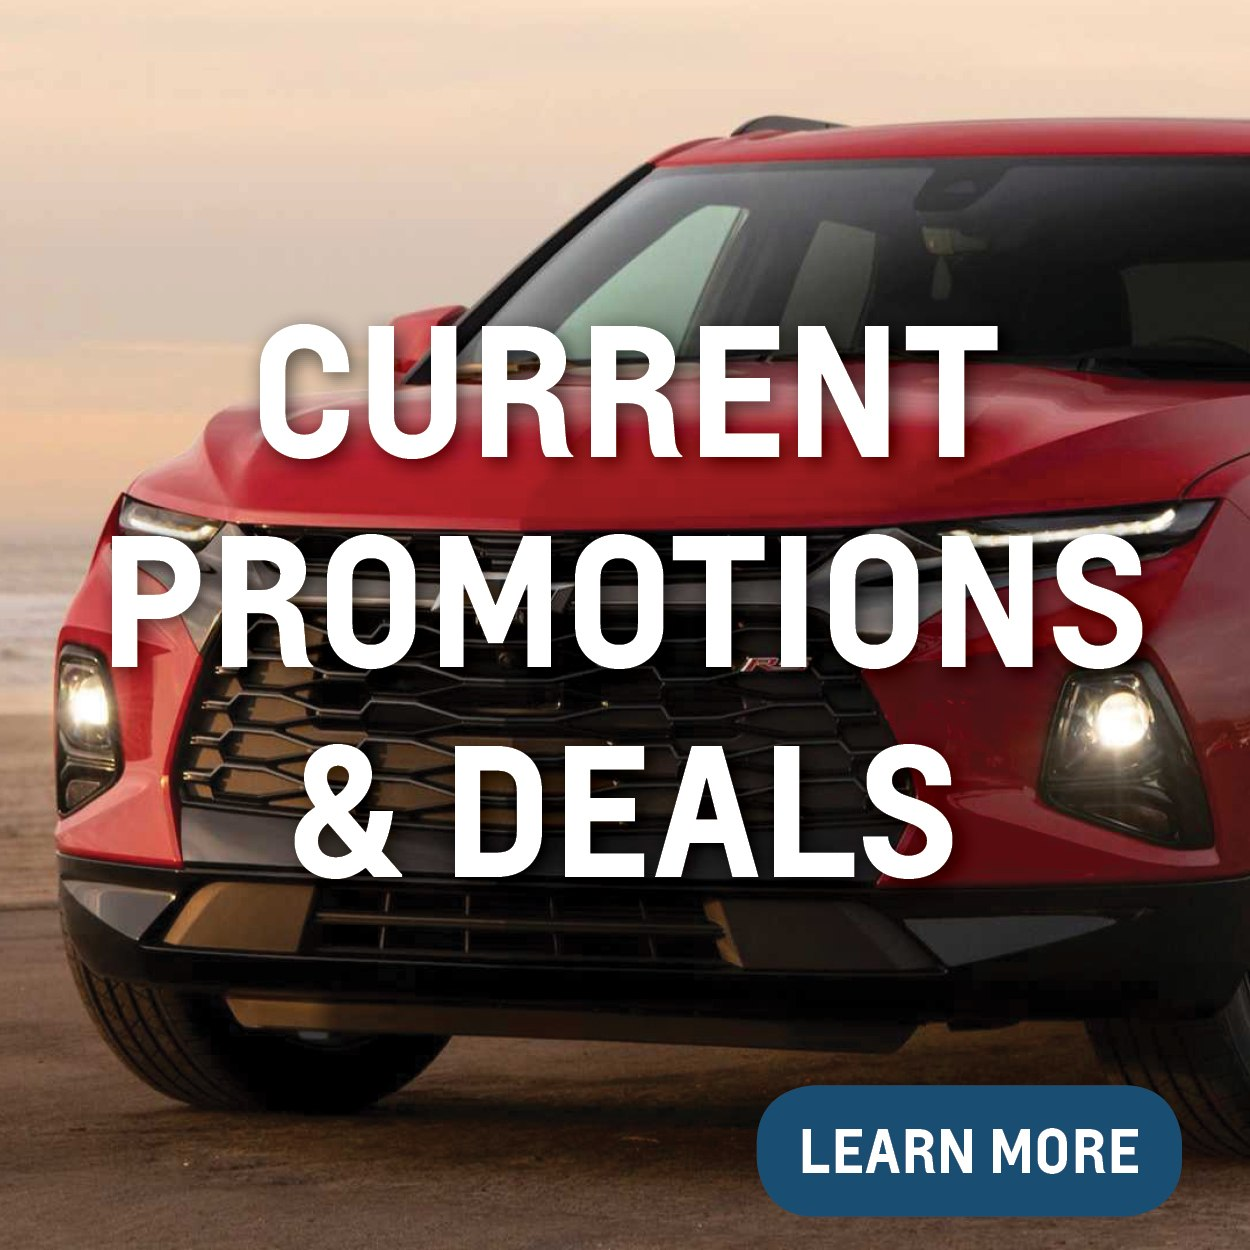 Current Promotions & Deals